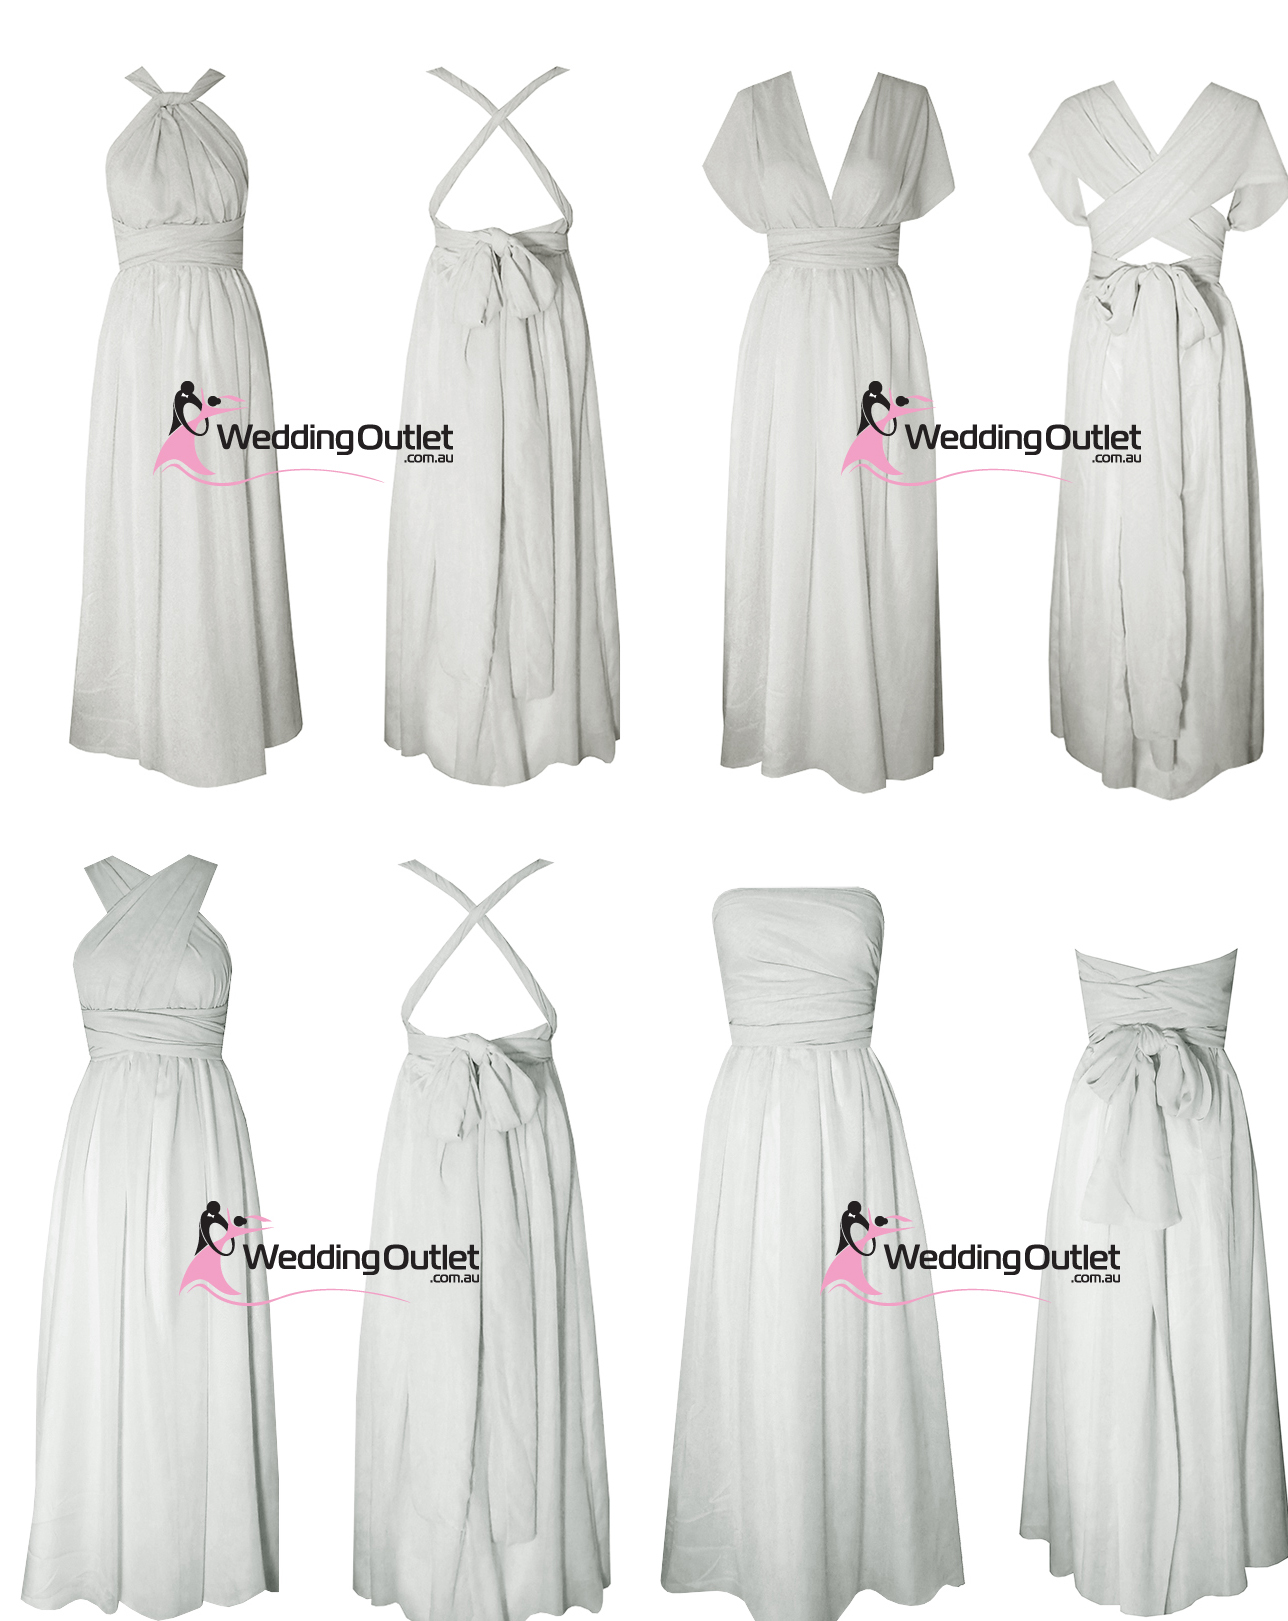 Weddingoutlet wedding outlet wedding dresses online light grey silver wrap dresses bridesmaids formal two ombrellifo Choice Image